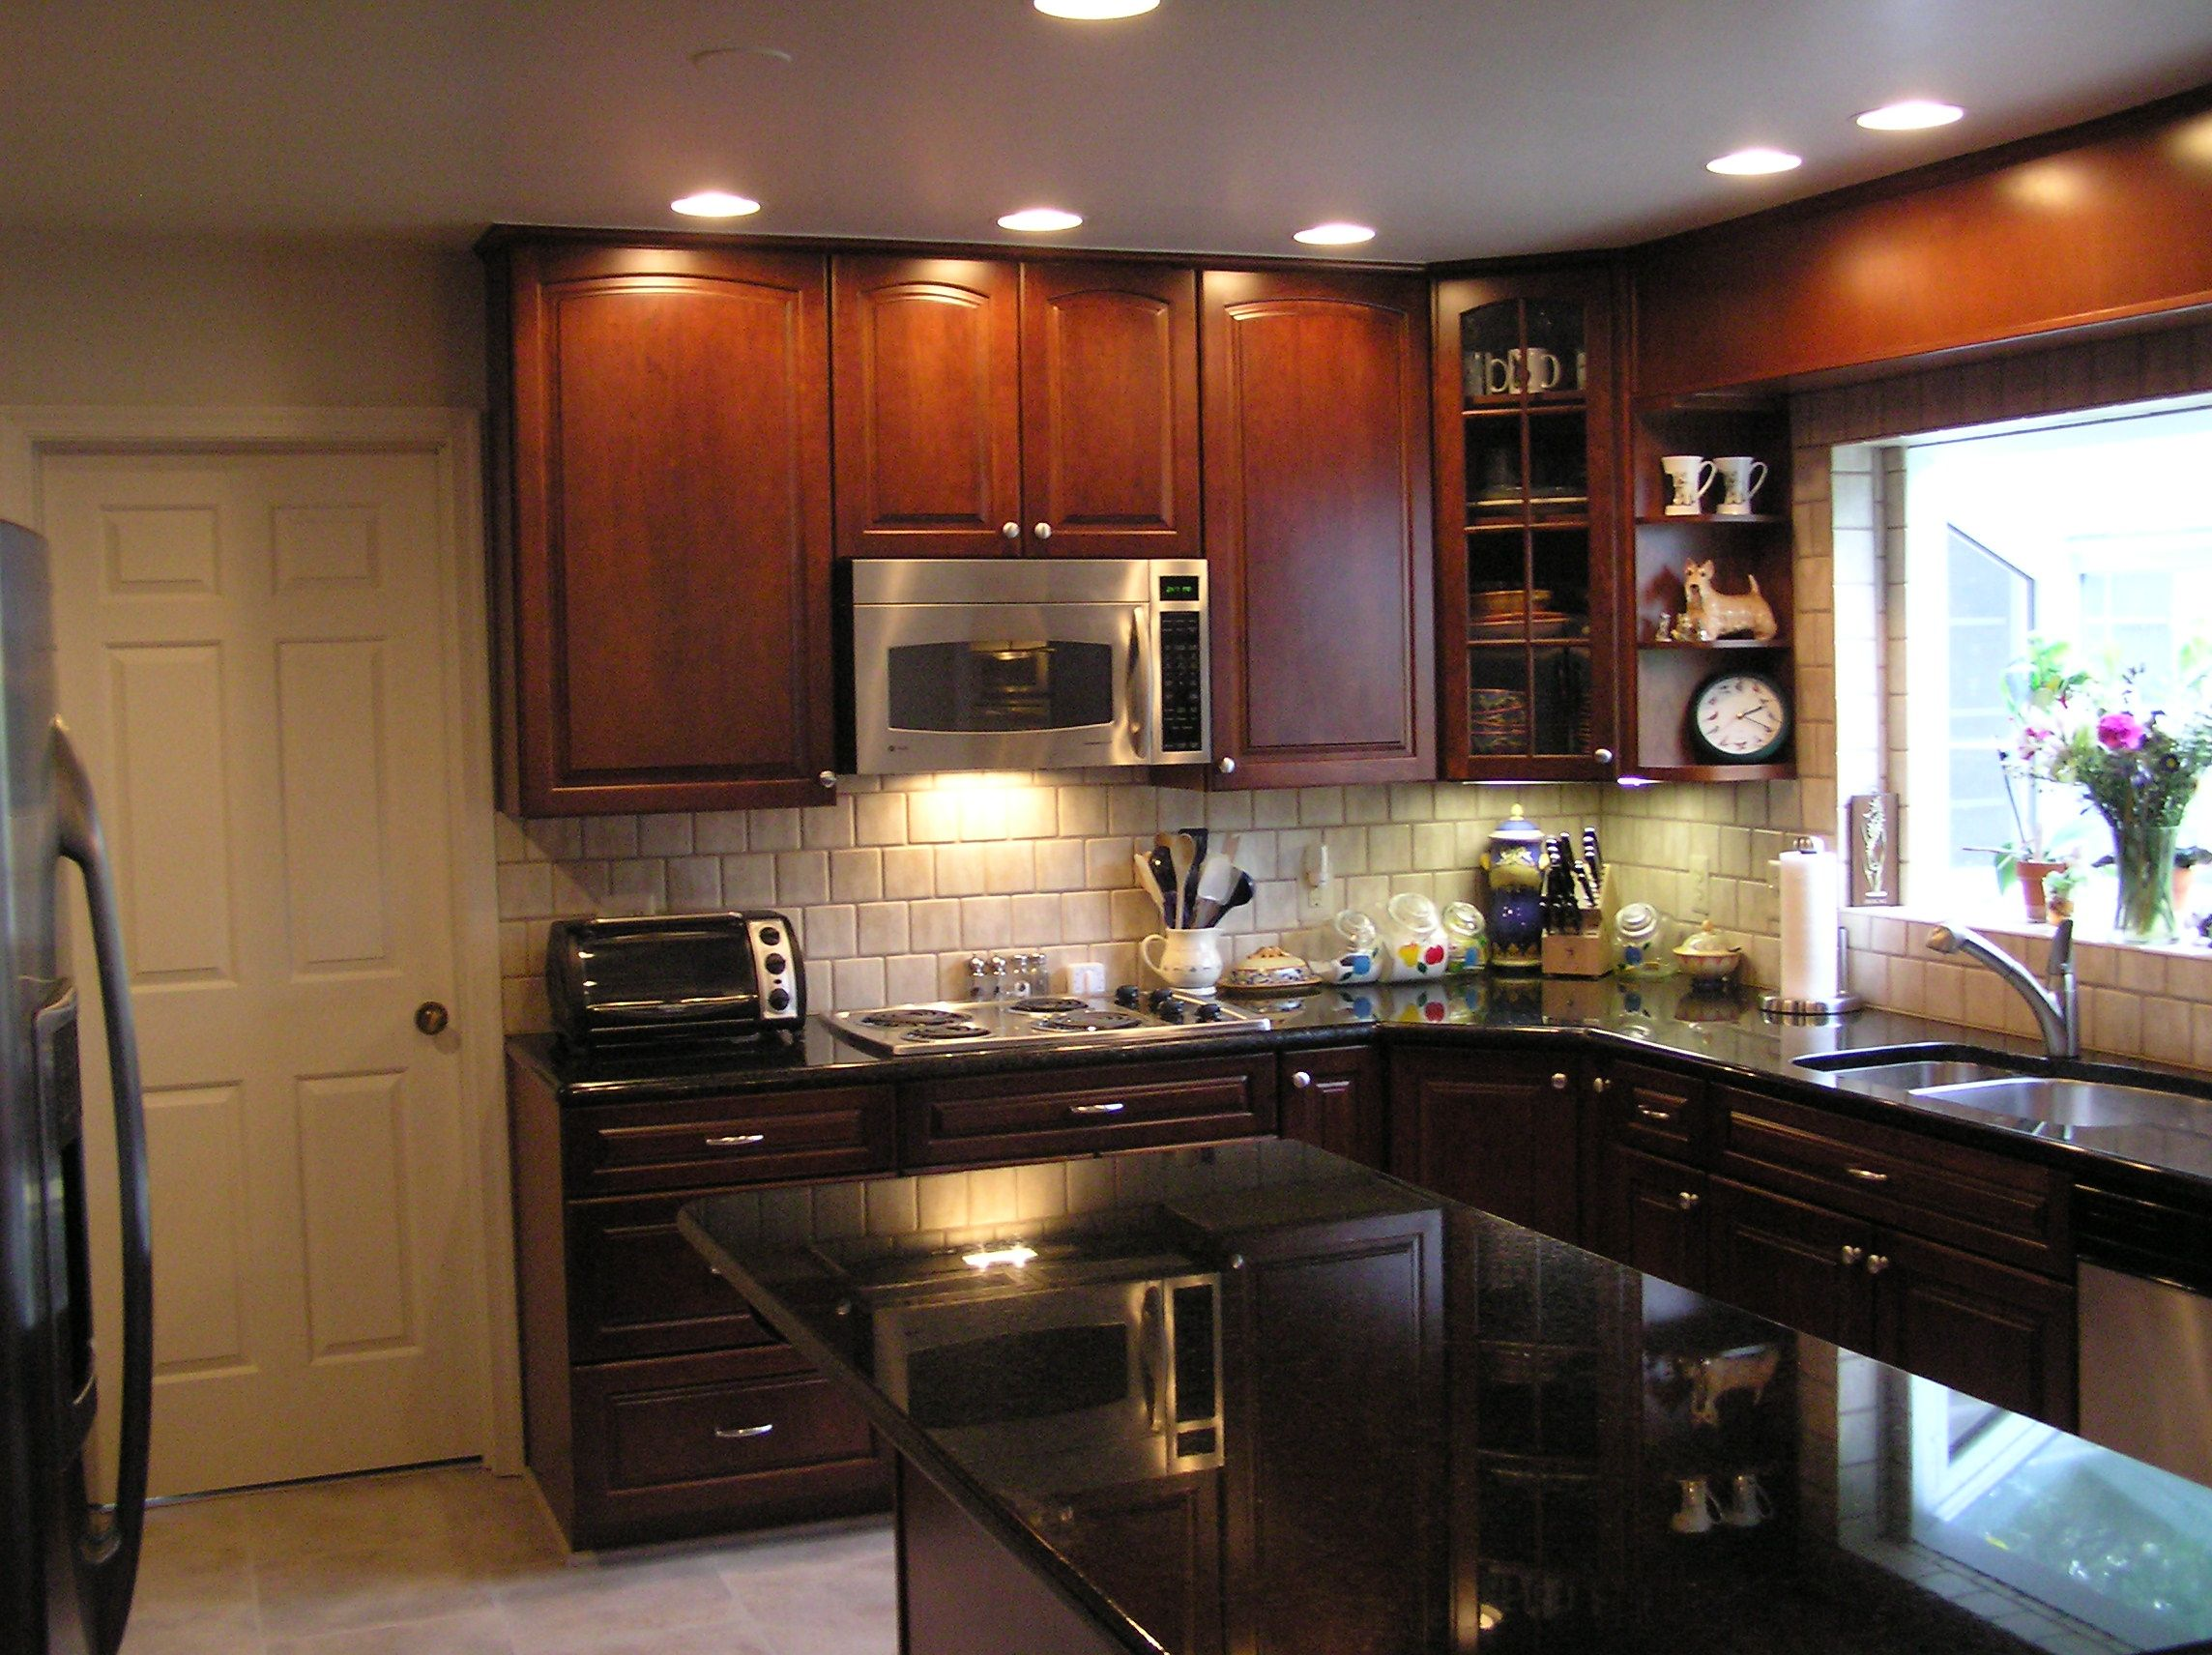 Remodel Kitchen Ideas Usually Done By Change The Setting Or